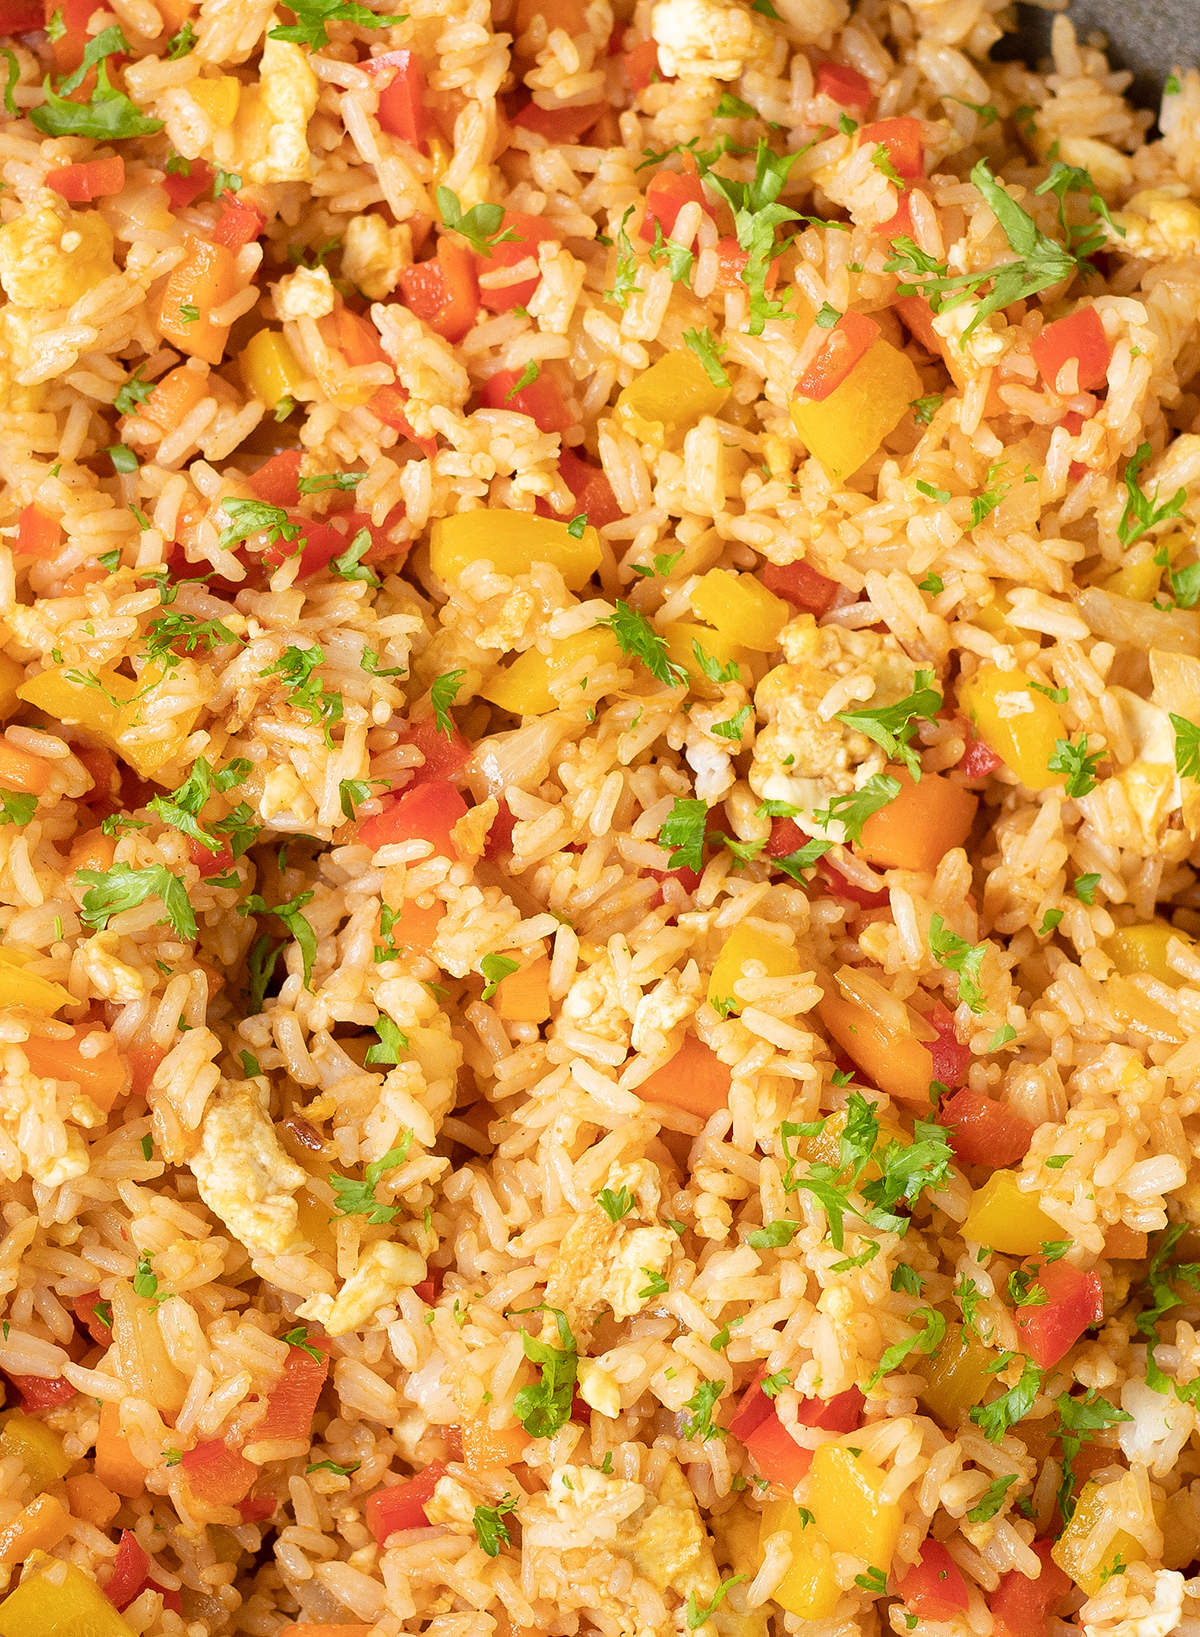 Chinese style egg and vegetable fried rice